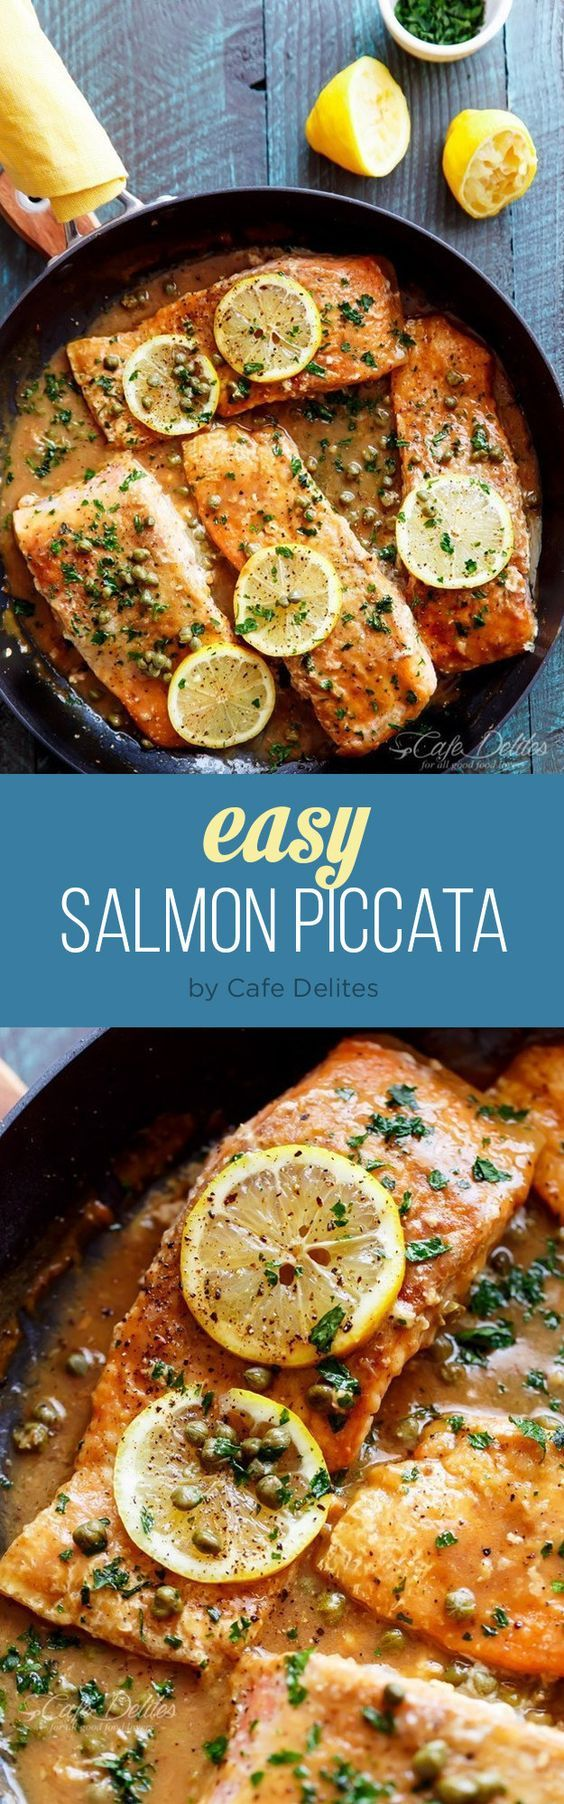 124 best Seafood images on Pinterest | Cooking recipes, Meals and ...